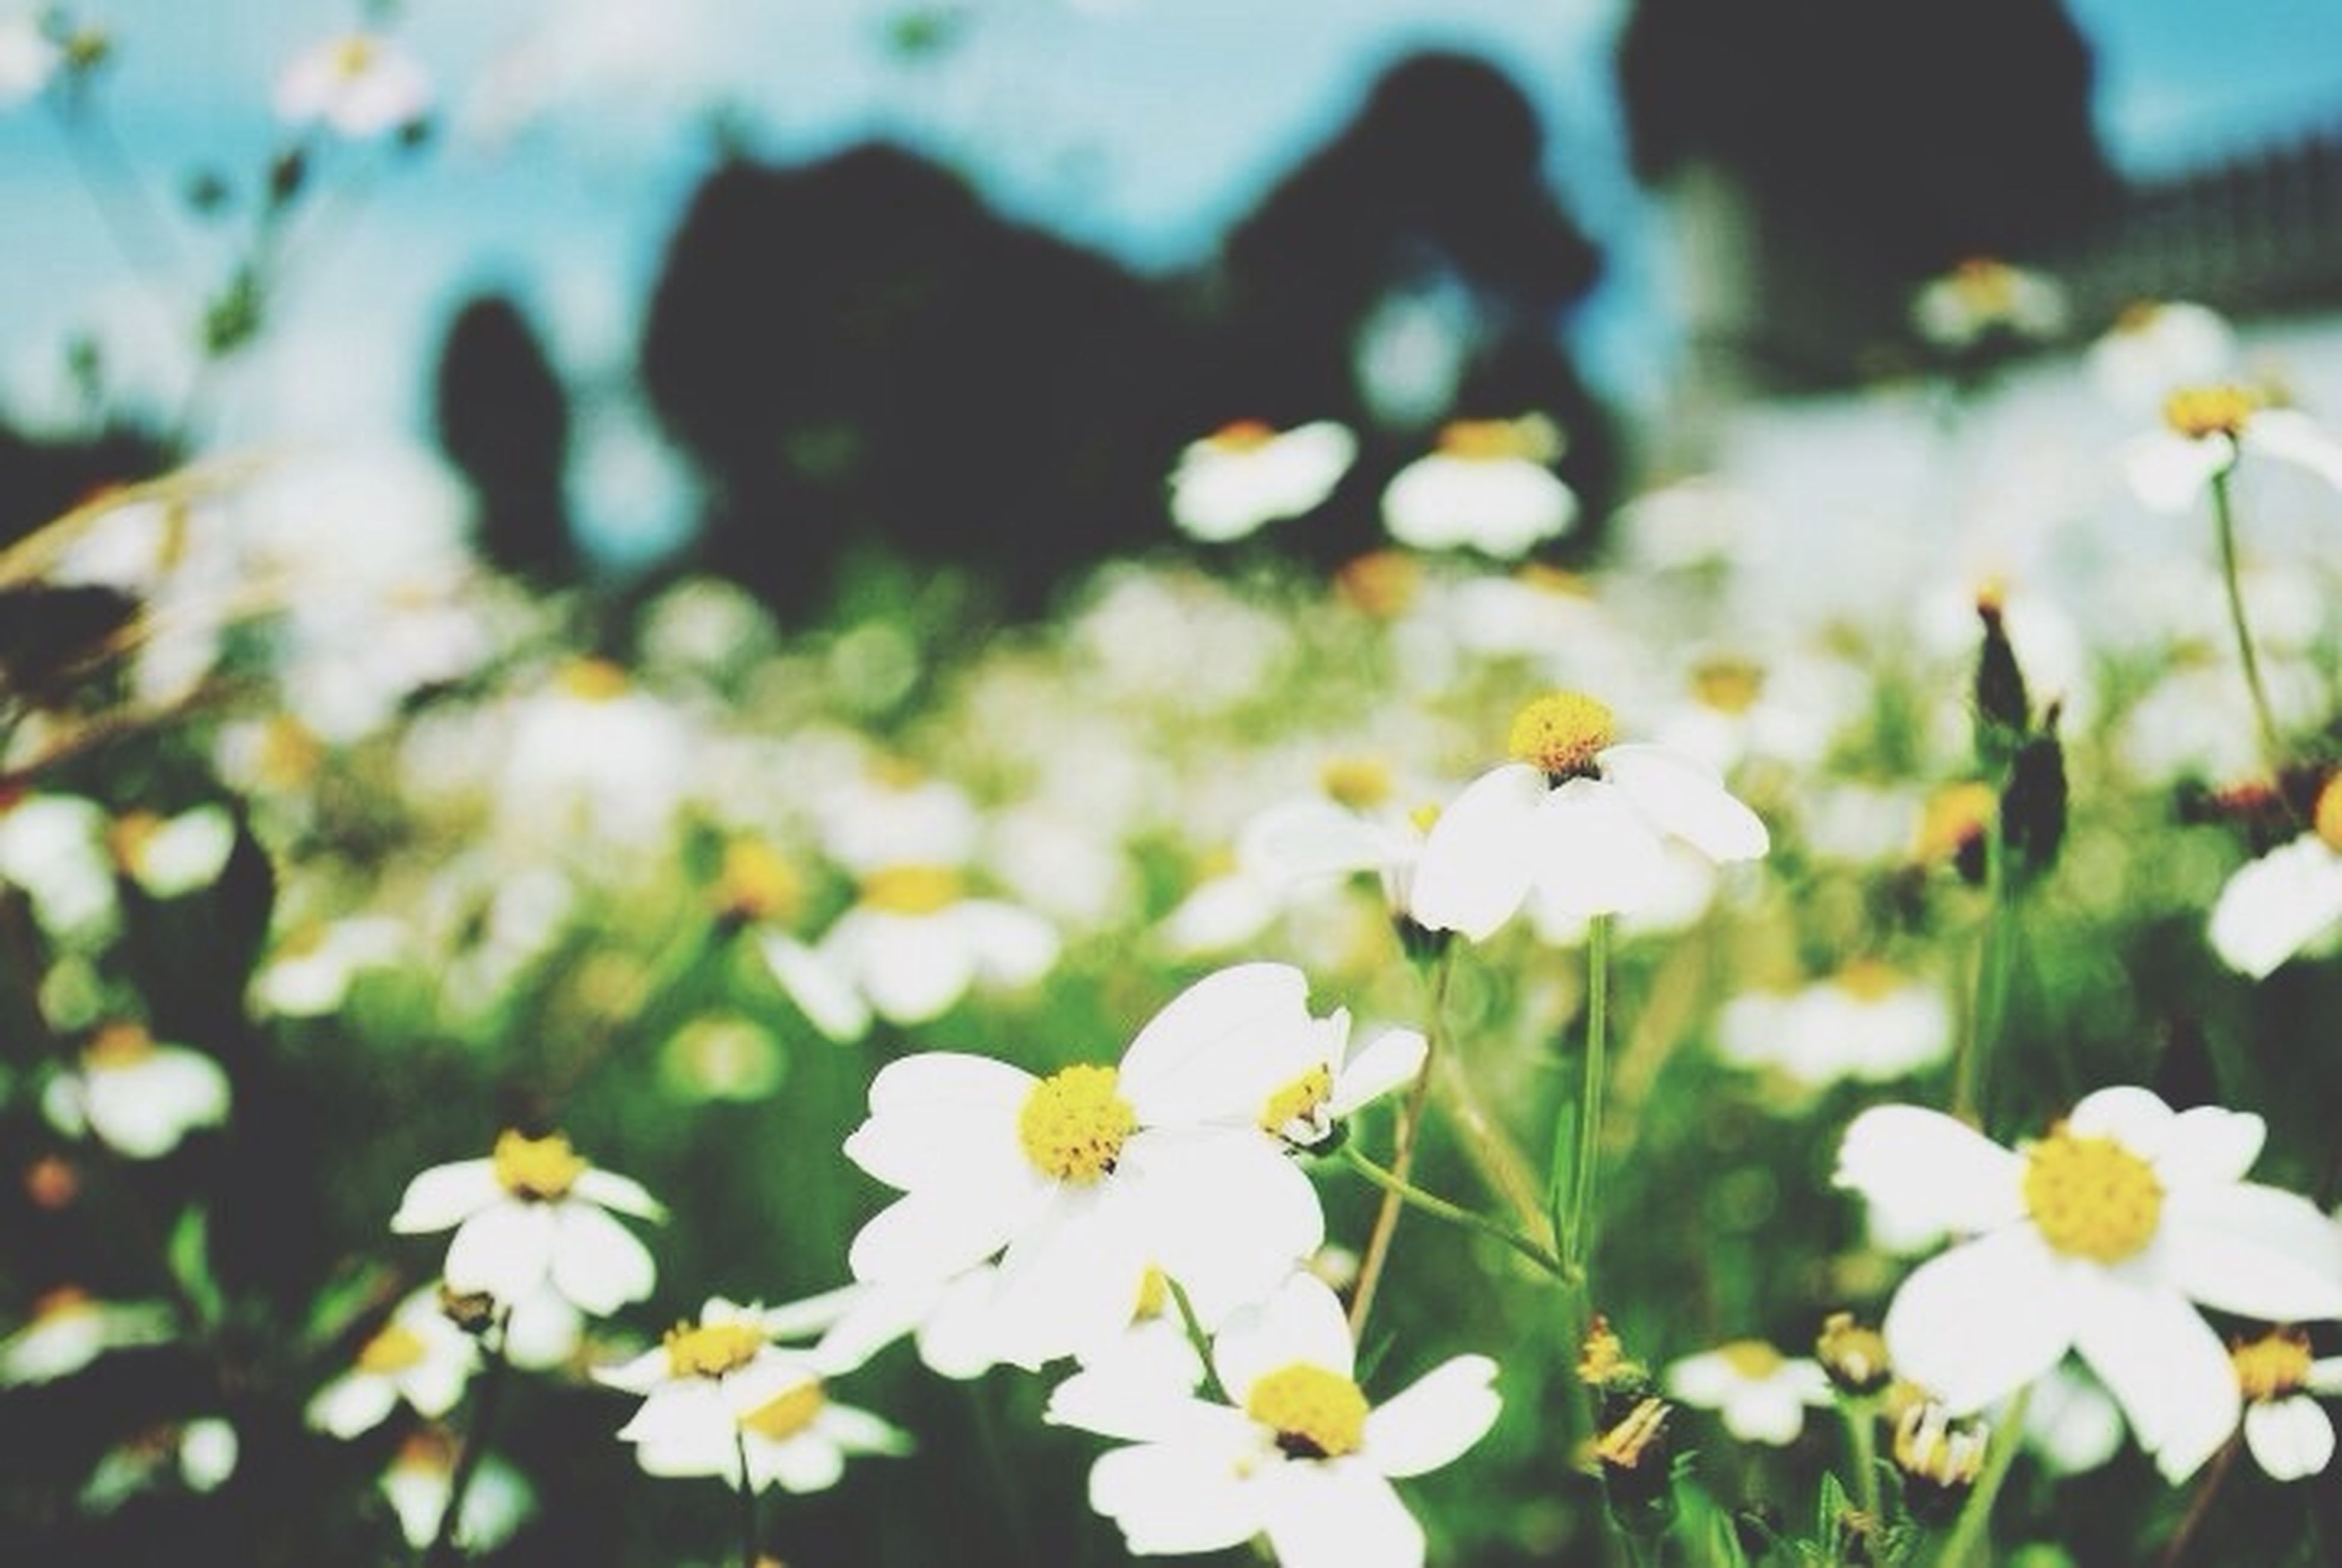 flower, white color, fragility, petal, freshness, growth, flower head, focus on foreground, blooming, beauty in nature, nature, daisy, selective focus, close-up, plant, white, in bloom, field, outdoors, park - man made space